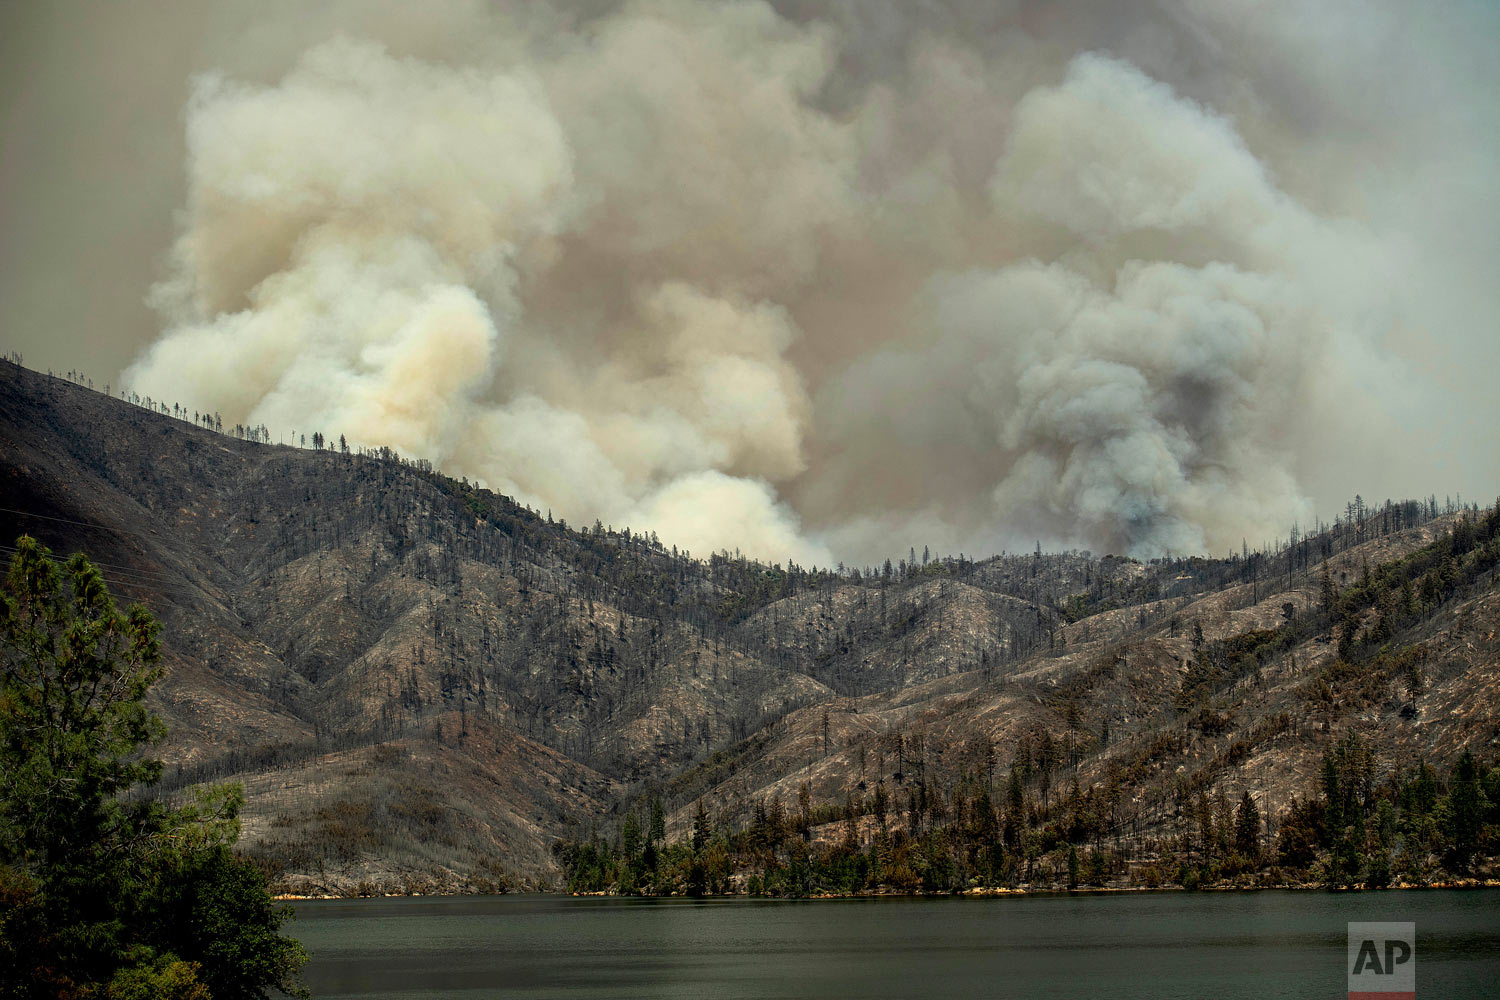 The Carr Fire burns above Whiskeytown Lake near Whiskeytown, Calif., on Thursday, July 26, 2018. (AP Photo/Noah Berger)